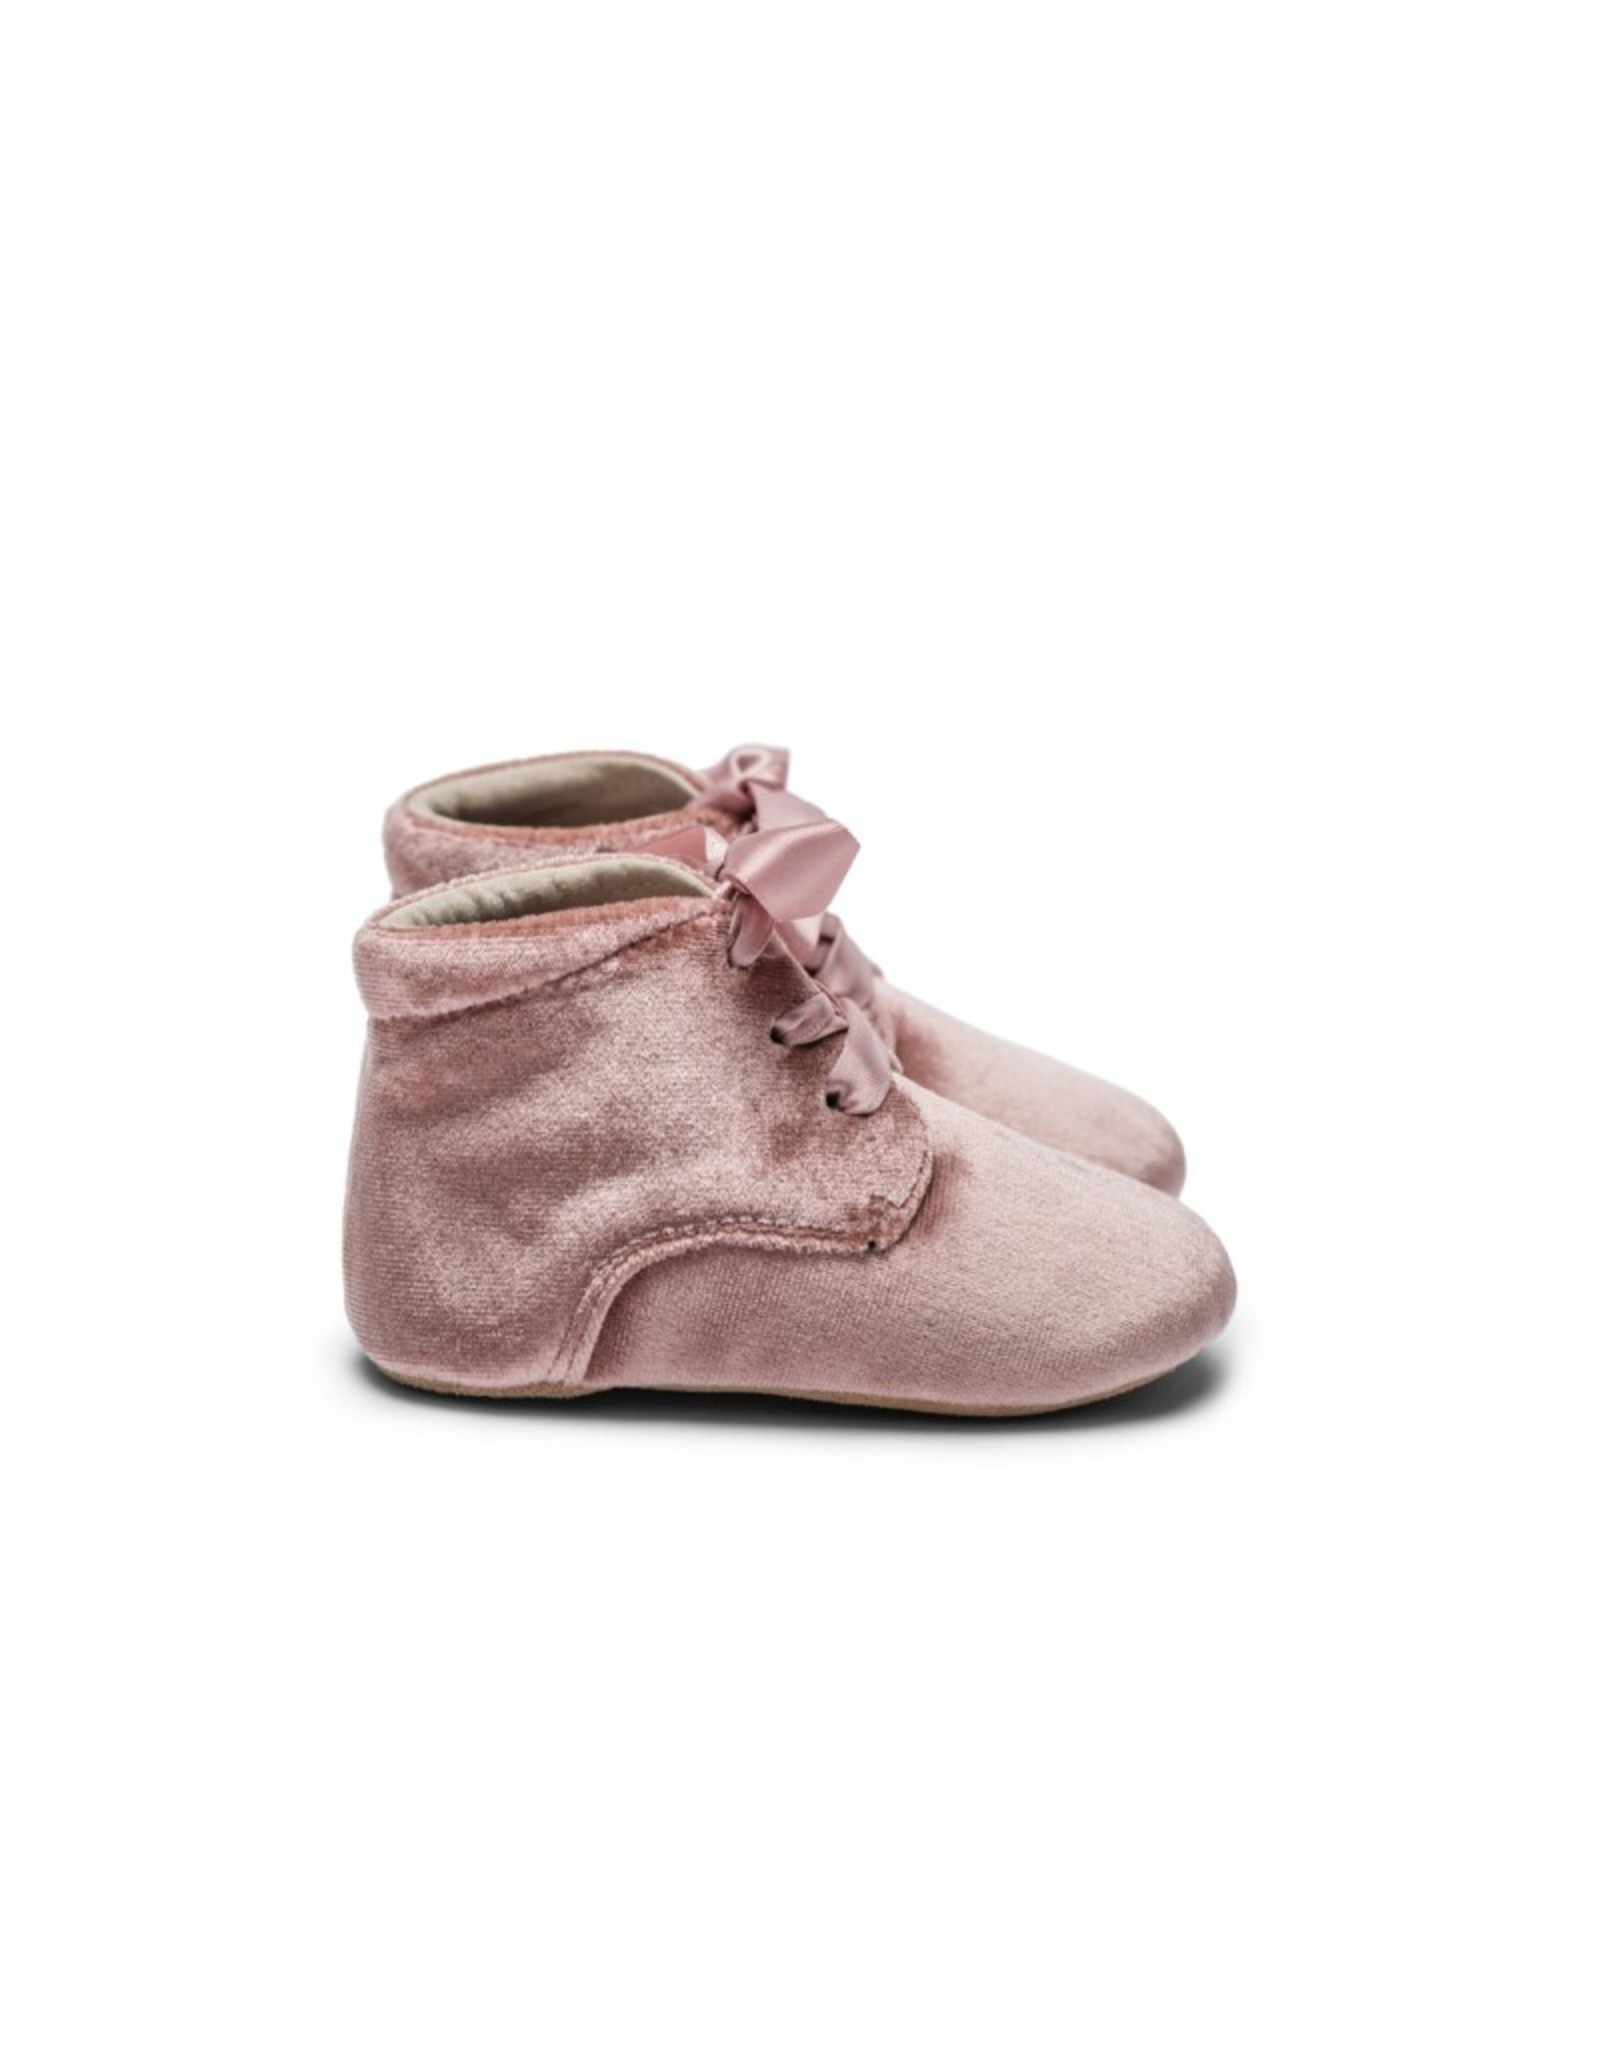 Mockies Mockies Classic Boots Velvet Pink - Limited Edition